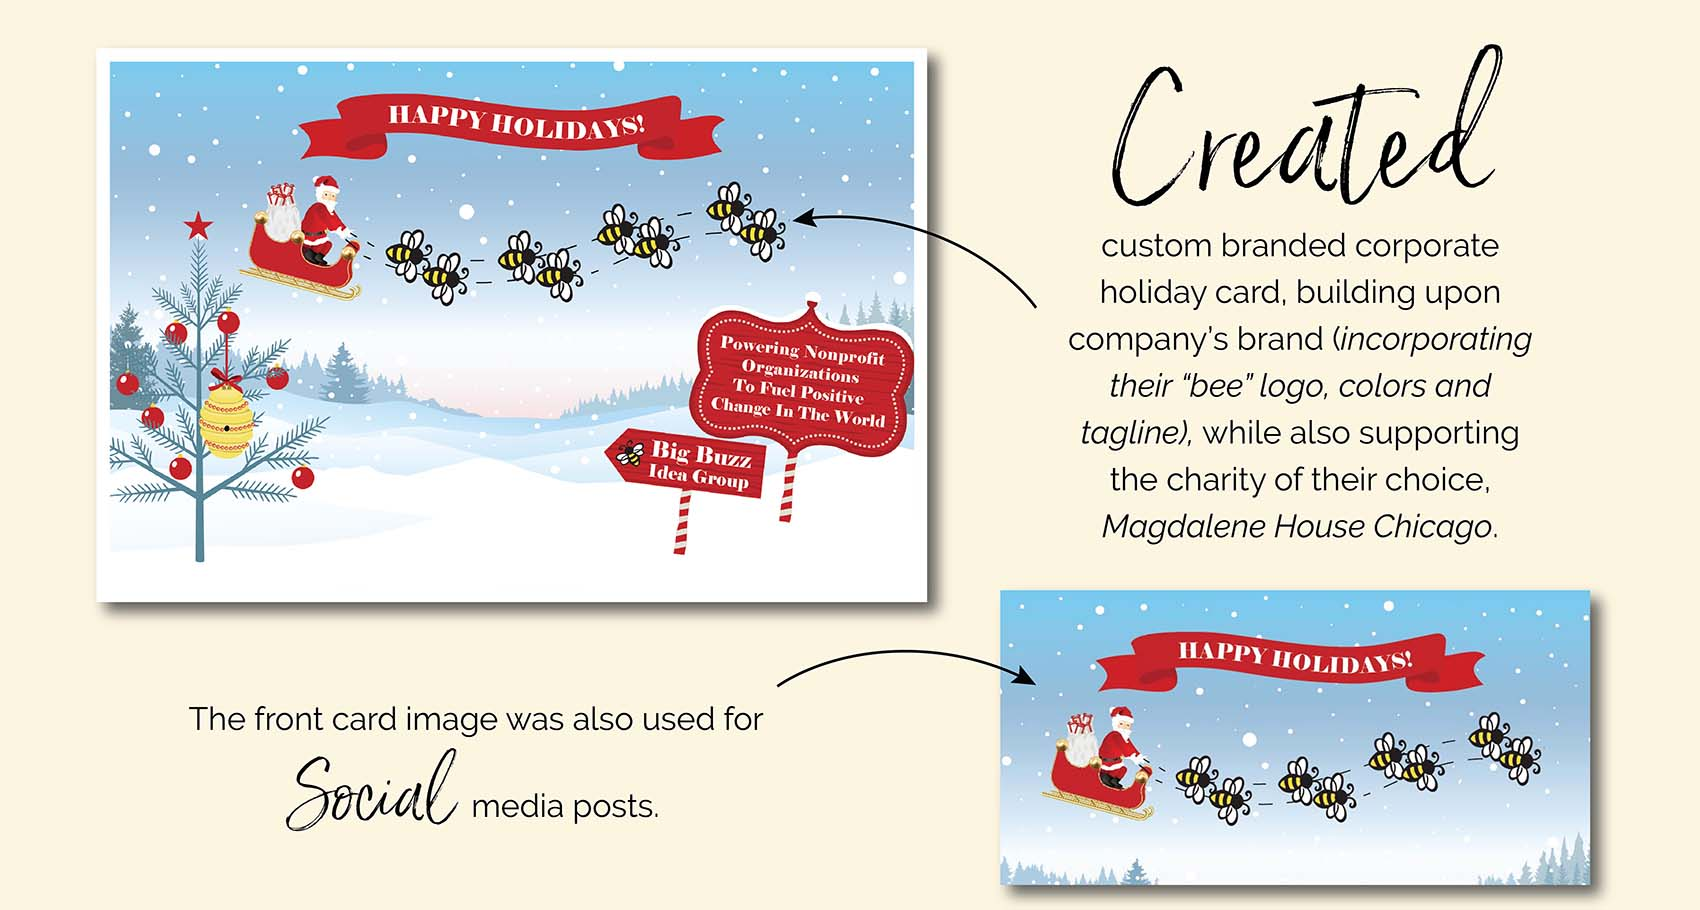 Holiday Card Design for Print and Social Media Use